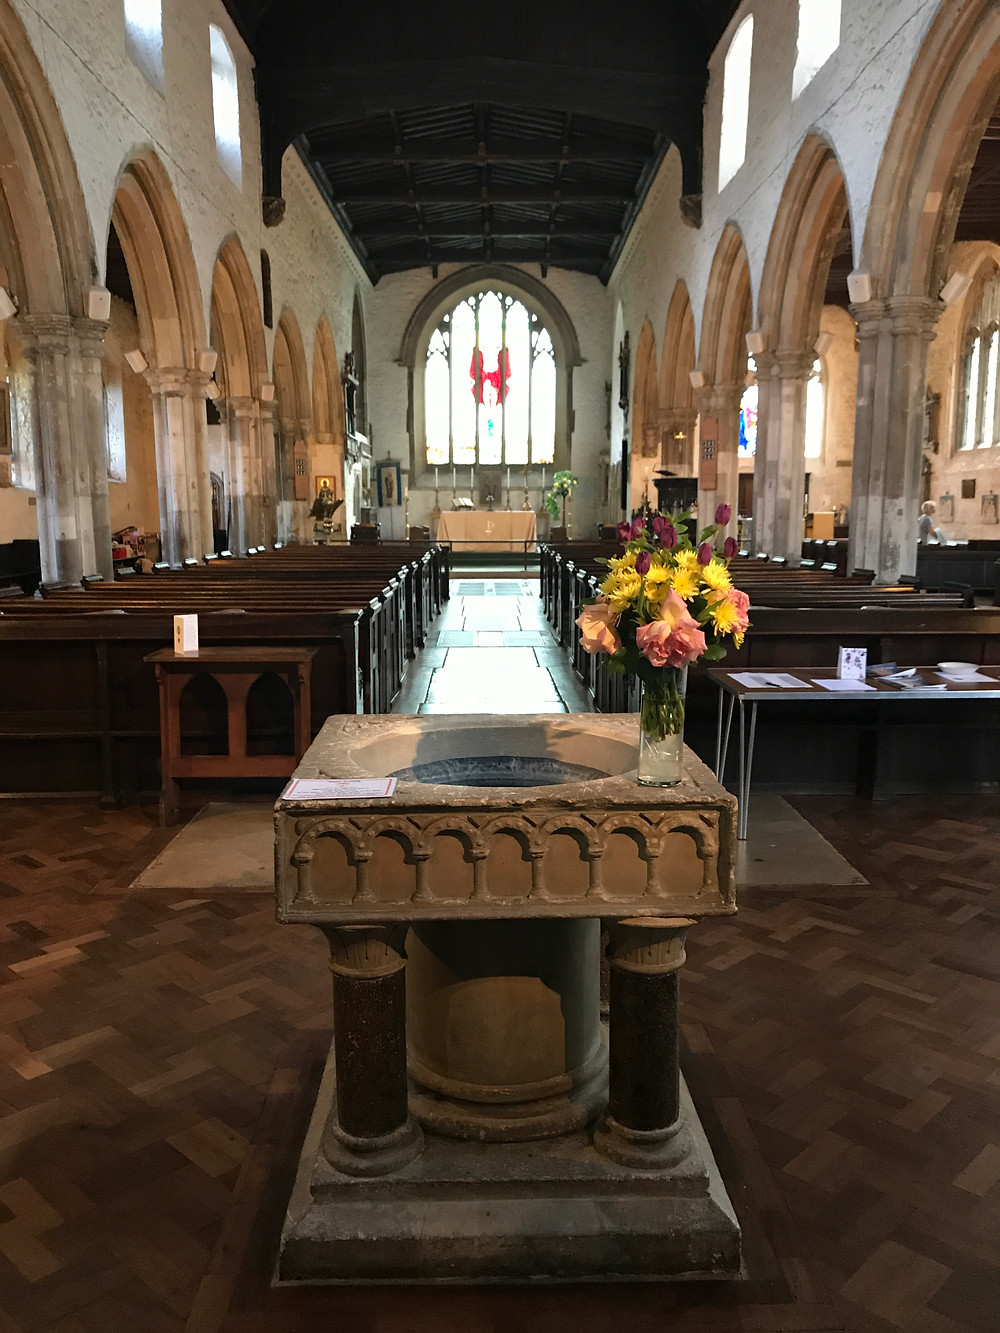 The baptism bowl at St Dunstans In The East.  Charles Robert Owen Jarvis was baptized here.